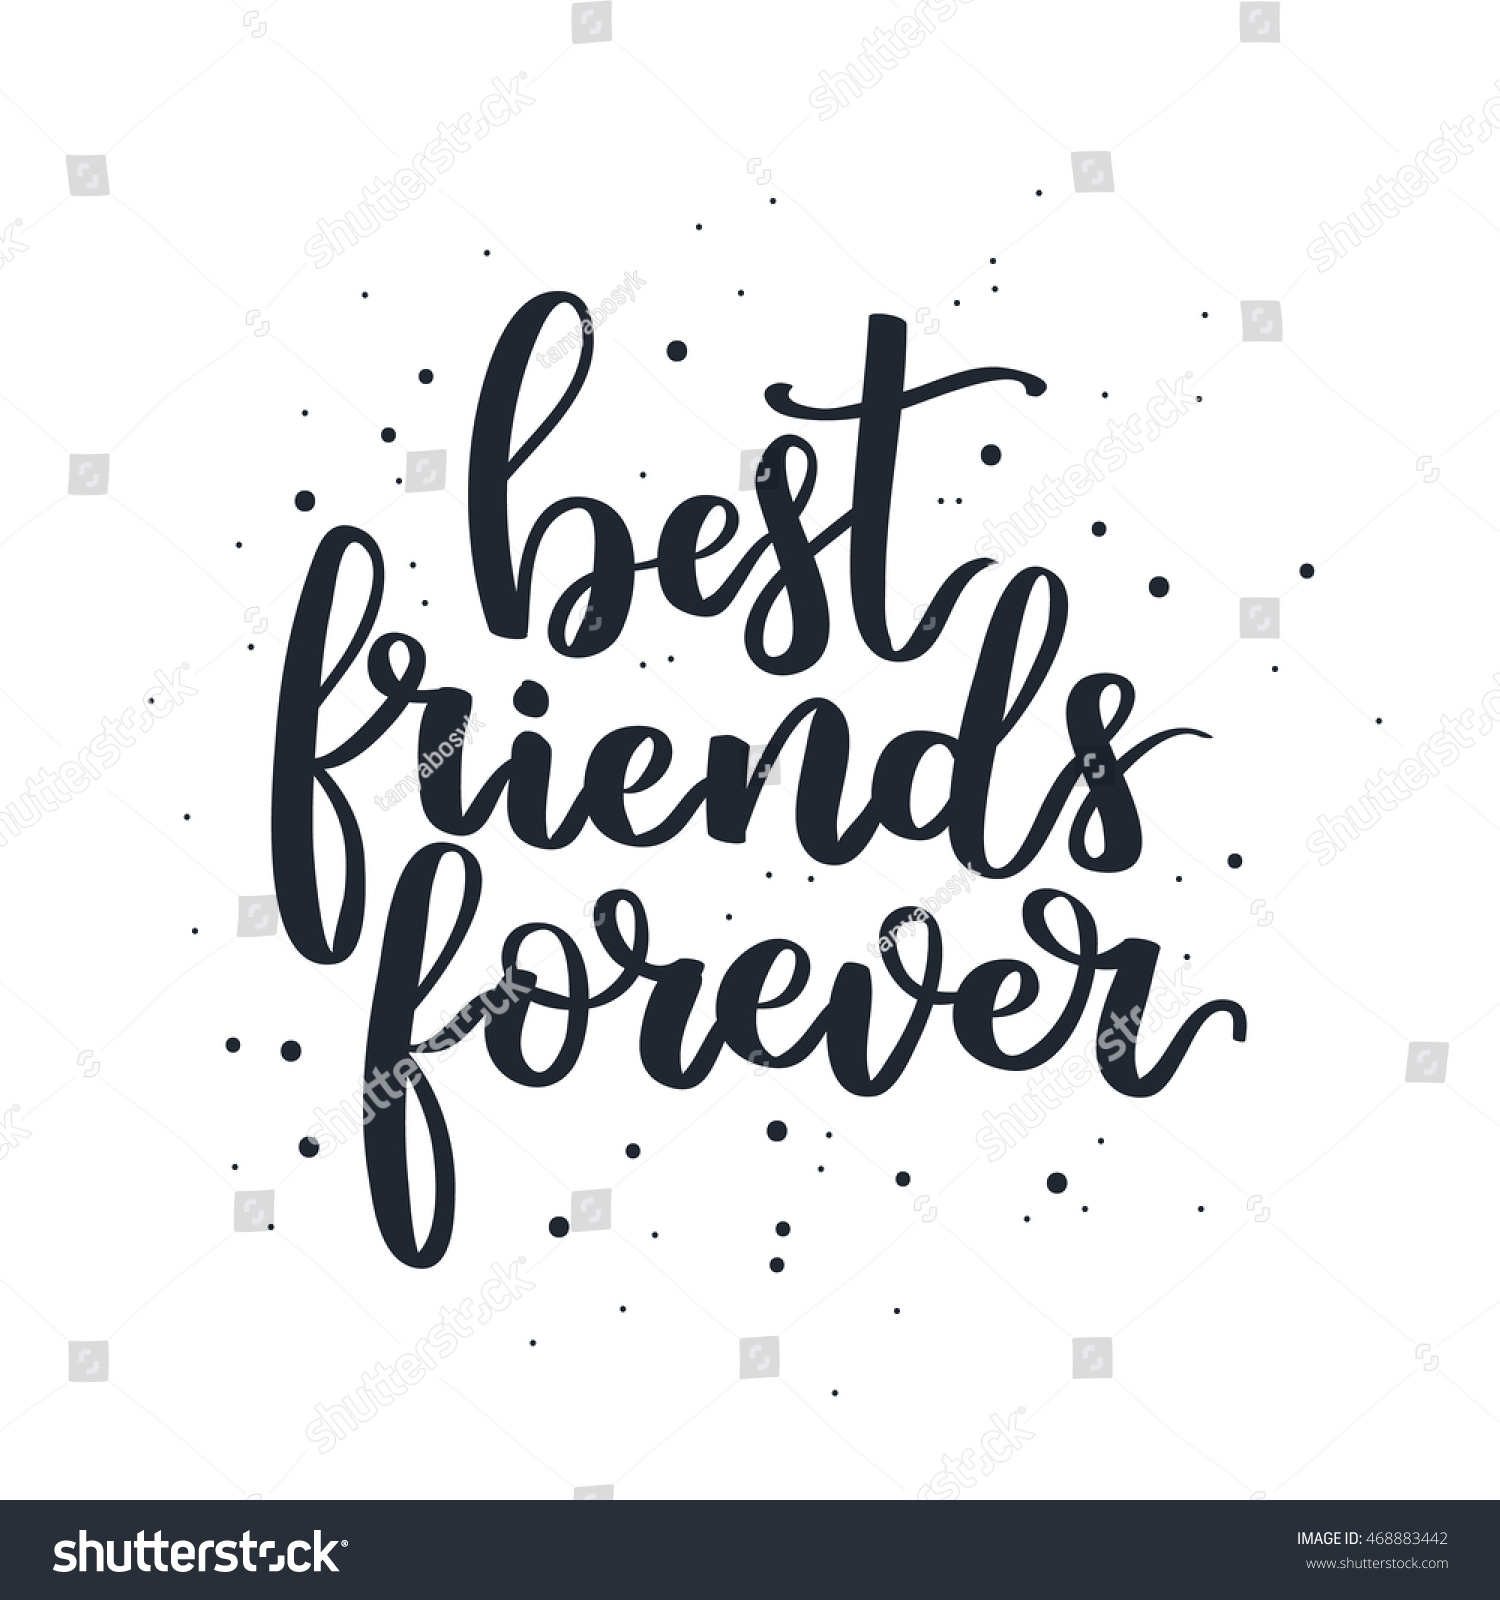 Stock Photo Hand Written Lettering Quote Modern Calligraphy Phrase Best Friends Forever Black Ink On White